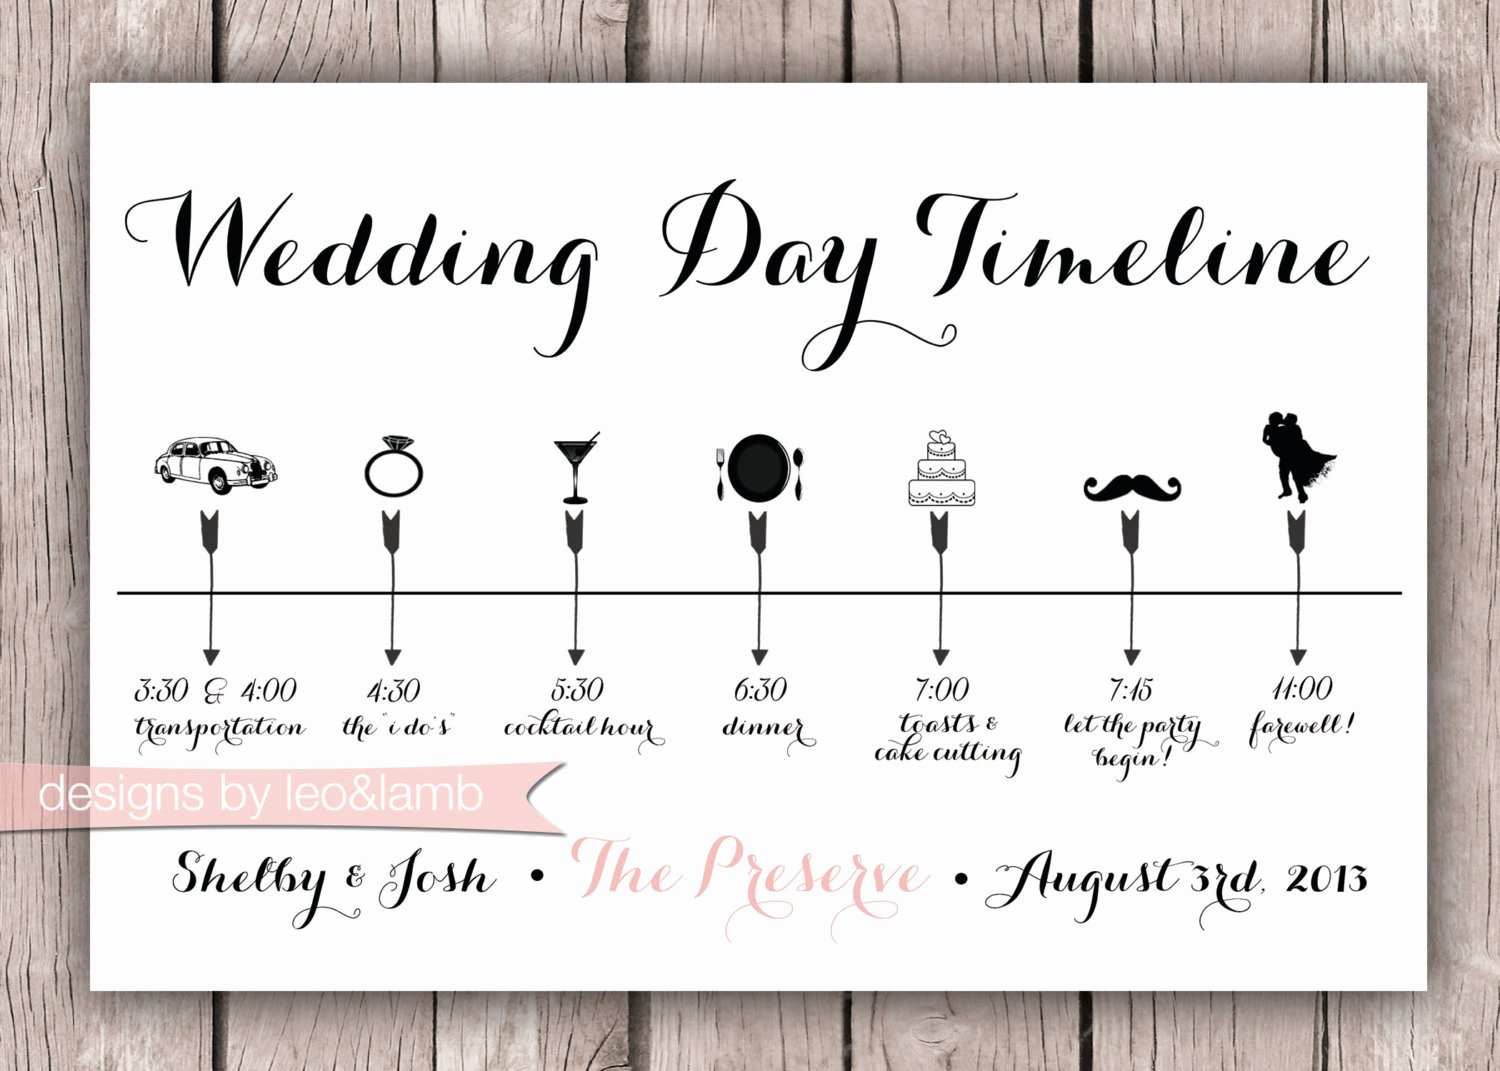 Wedding Day Timeline Template Free Awesome Custom Wedding Timeline 5x7 Digital File